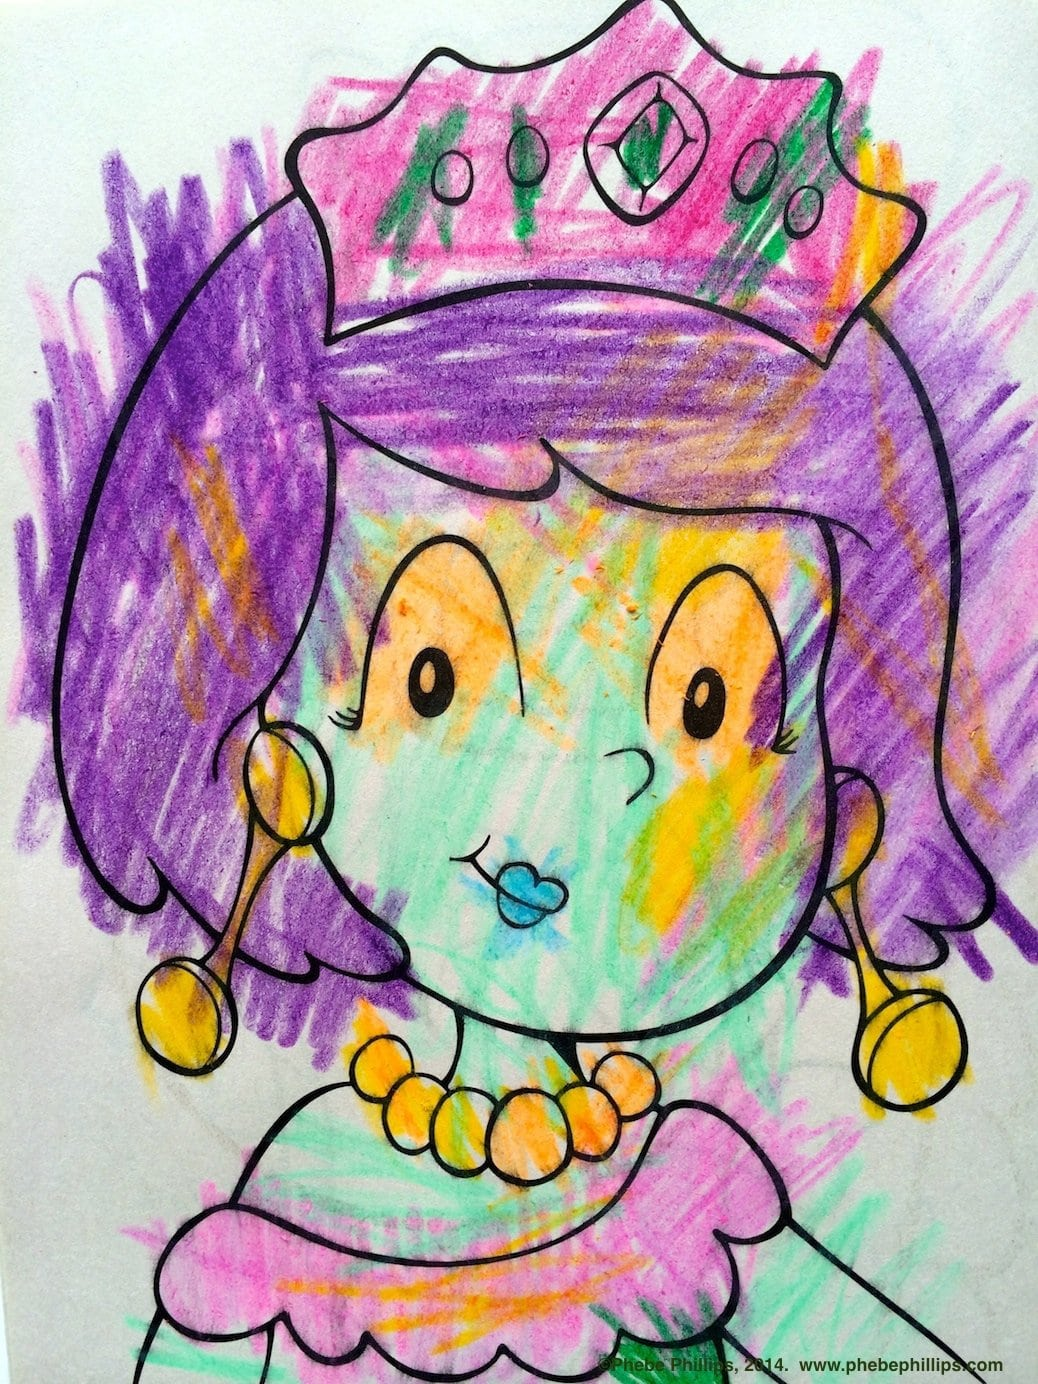 Coloring Outside The Lines…it's Not Just For Kids